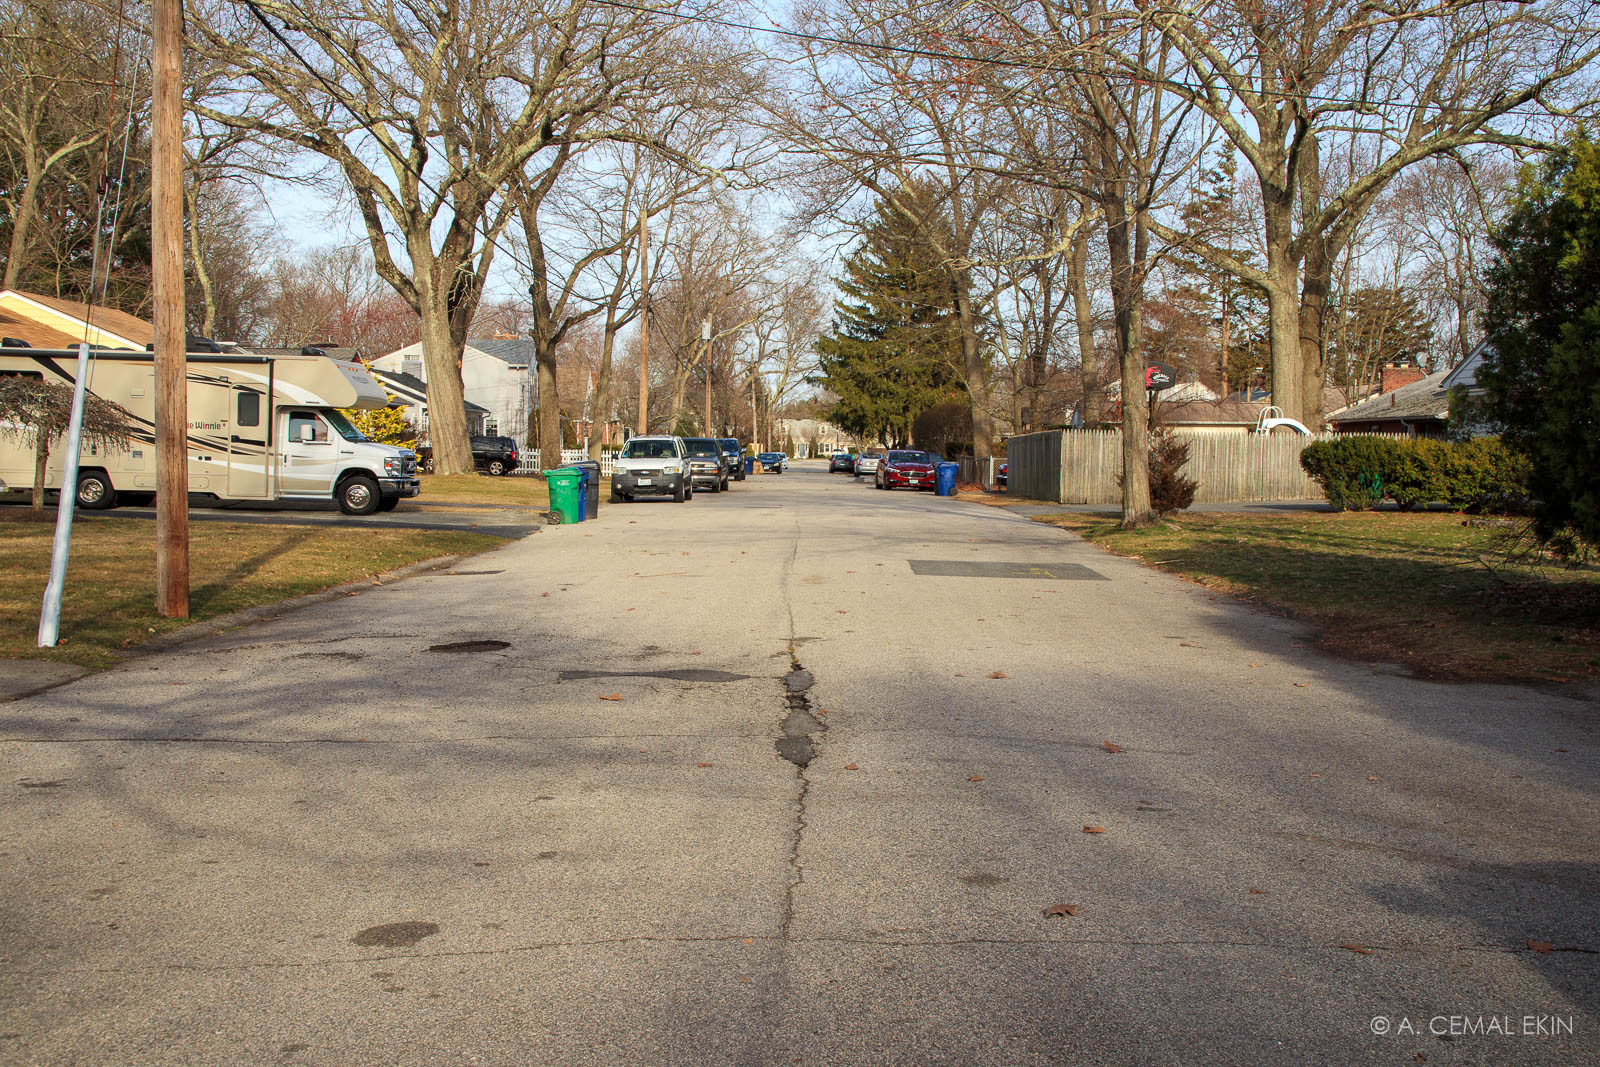 One of the streets in our neighborhood, Todd St.